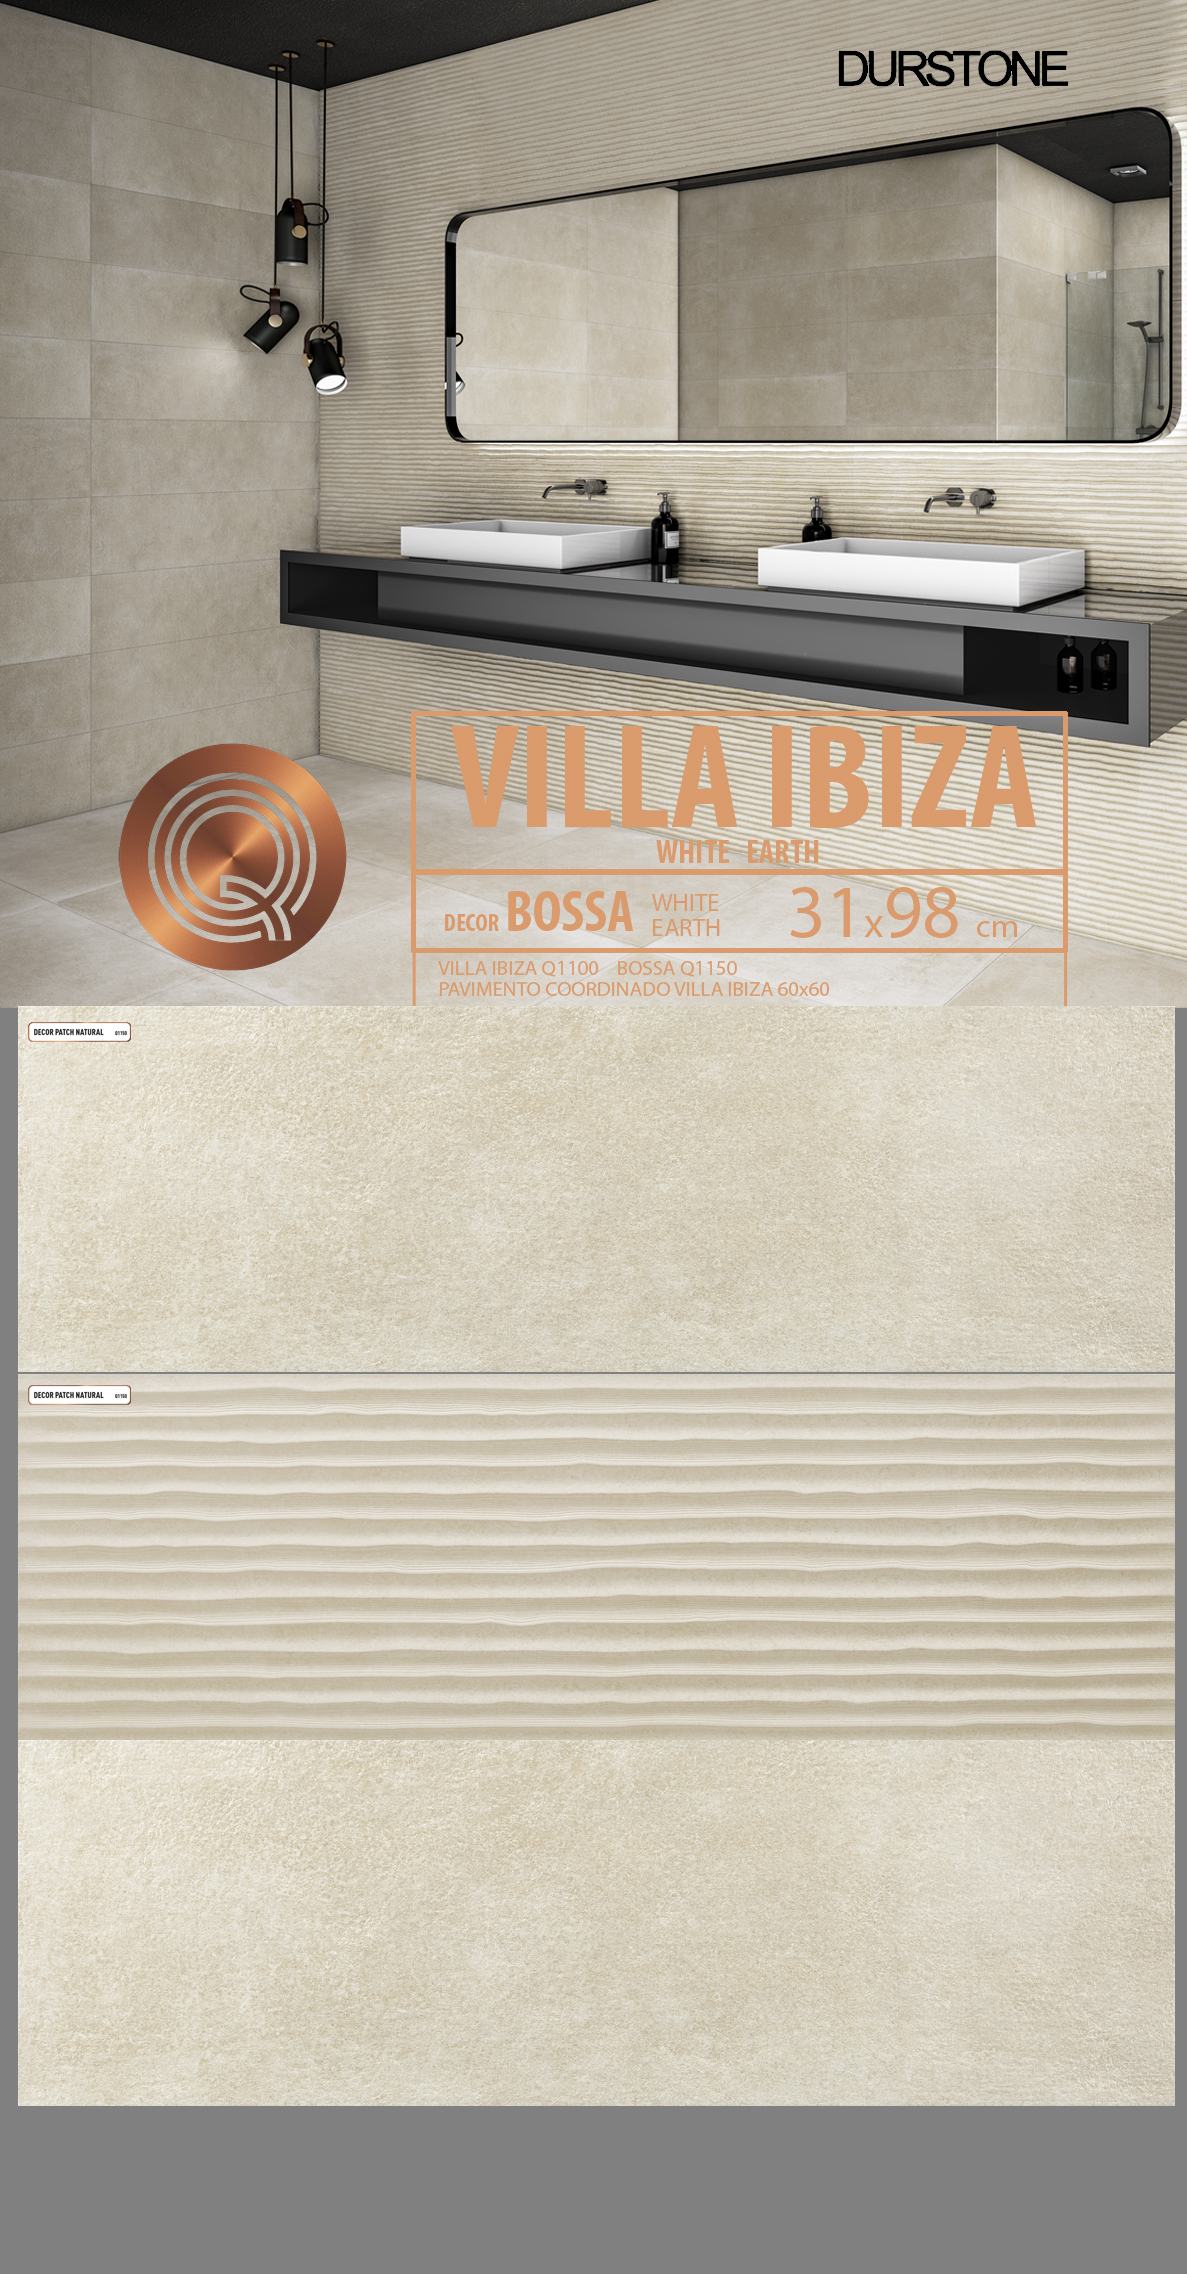 5284 RVM PANEL MIX VILLA IBIZA BOSSA EARTH Cod. 5284